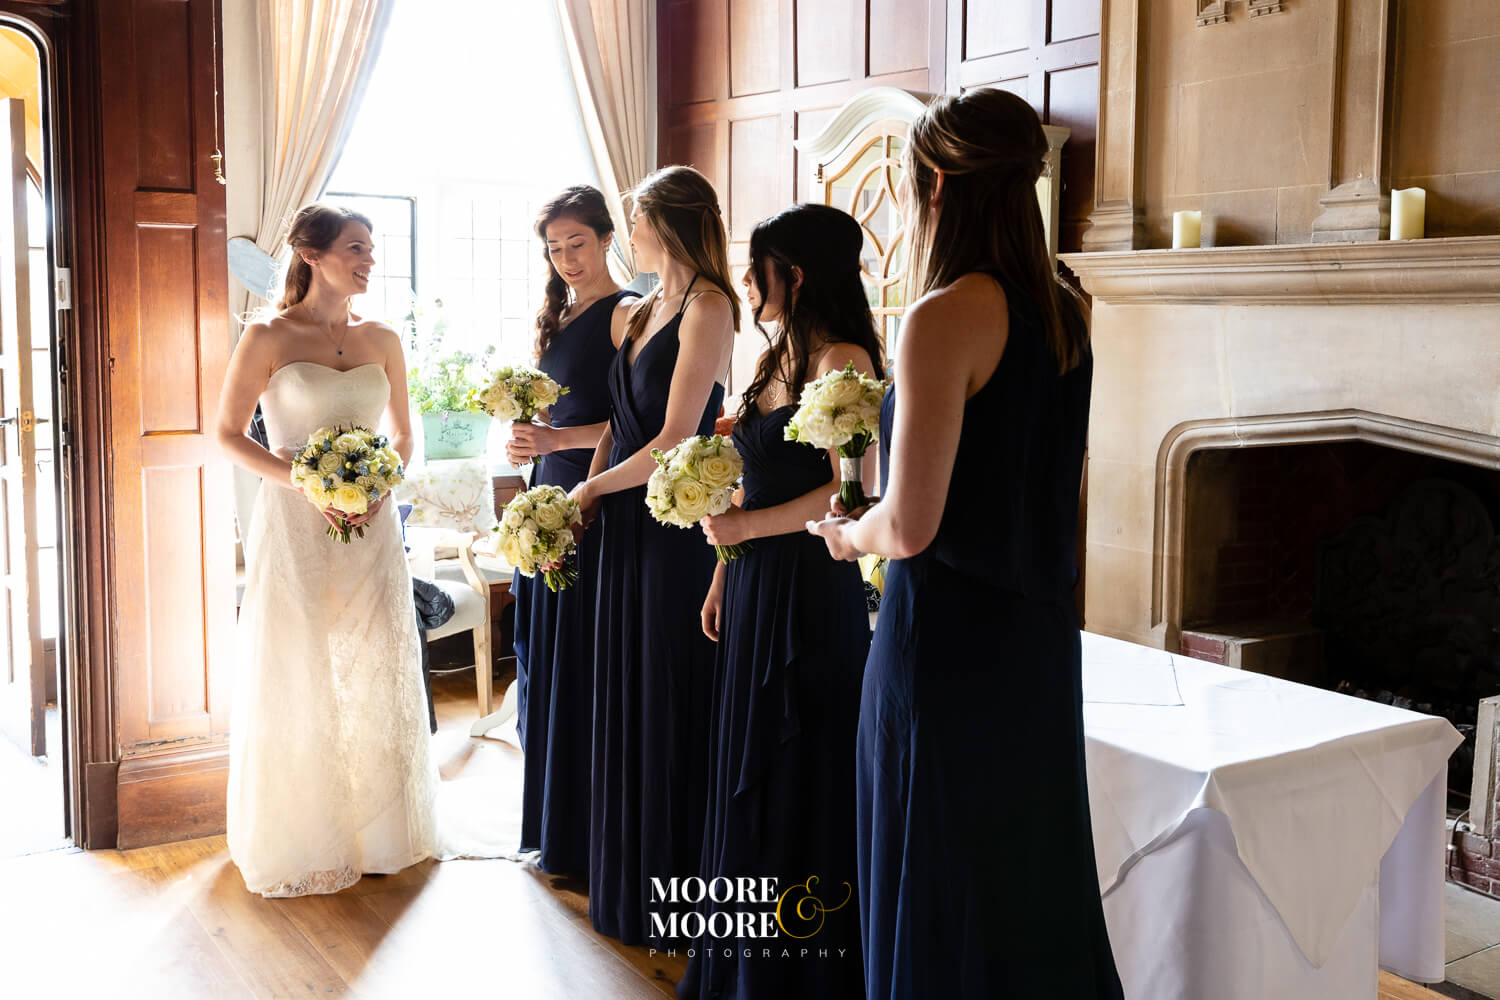 Farnham House Hotel Wedding Photography by Moore & Moore Photography, Fleet, Hampshire